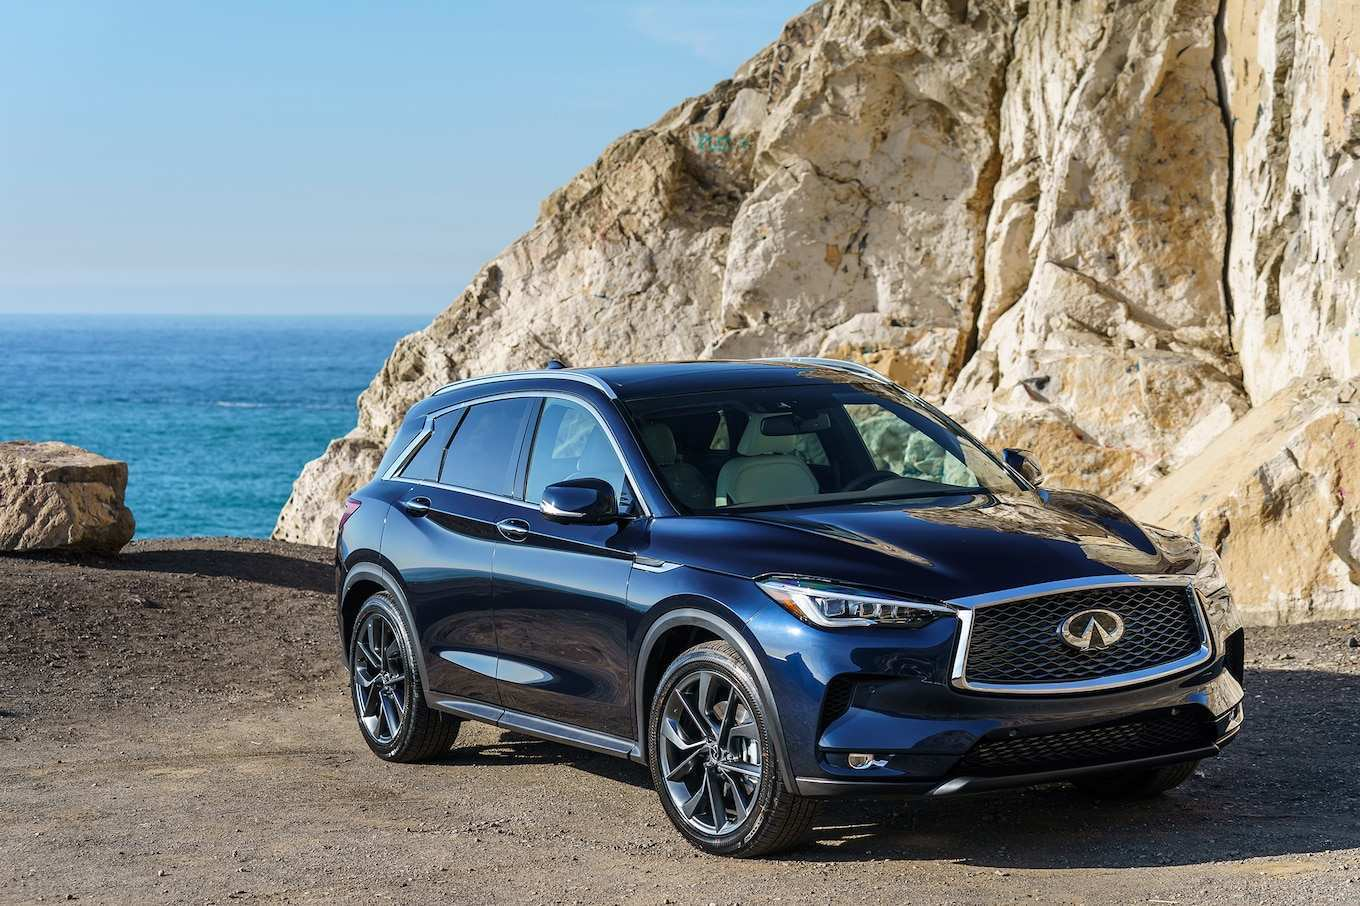 20 A 2019 Infiniti Qx50 Crossover Price Design And Review